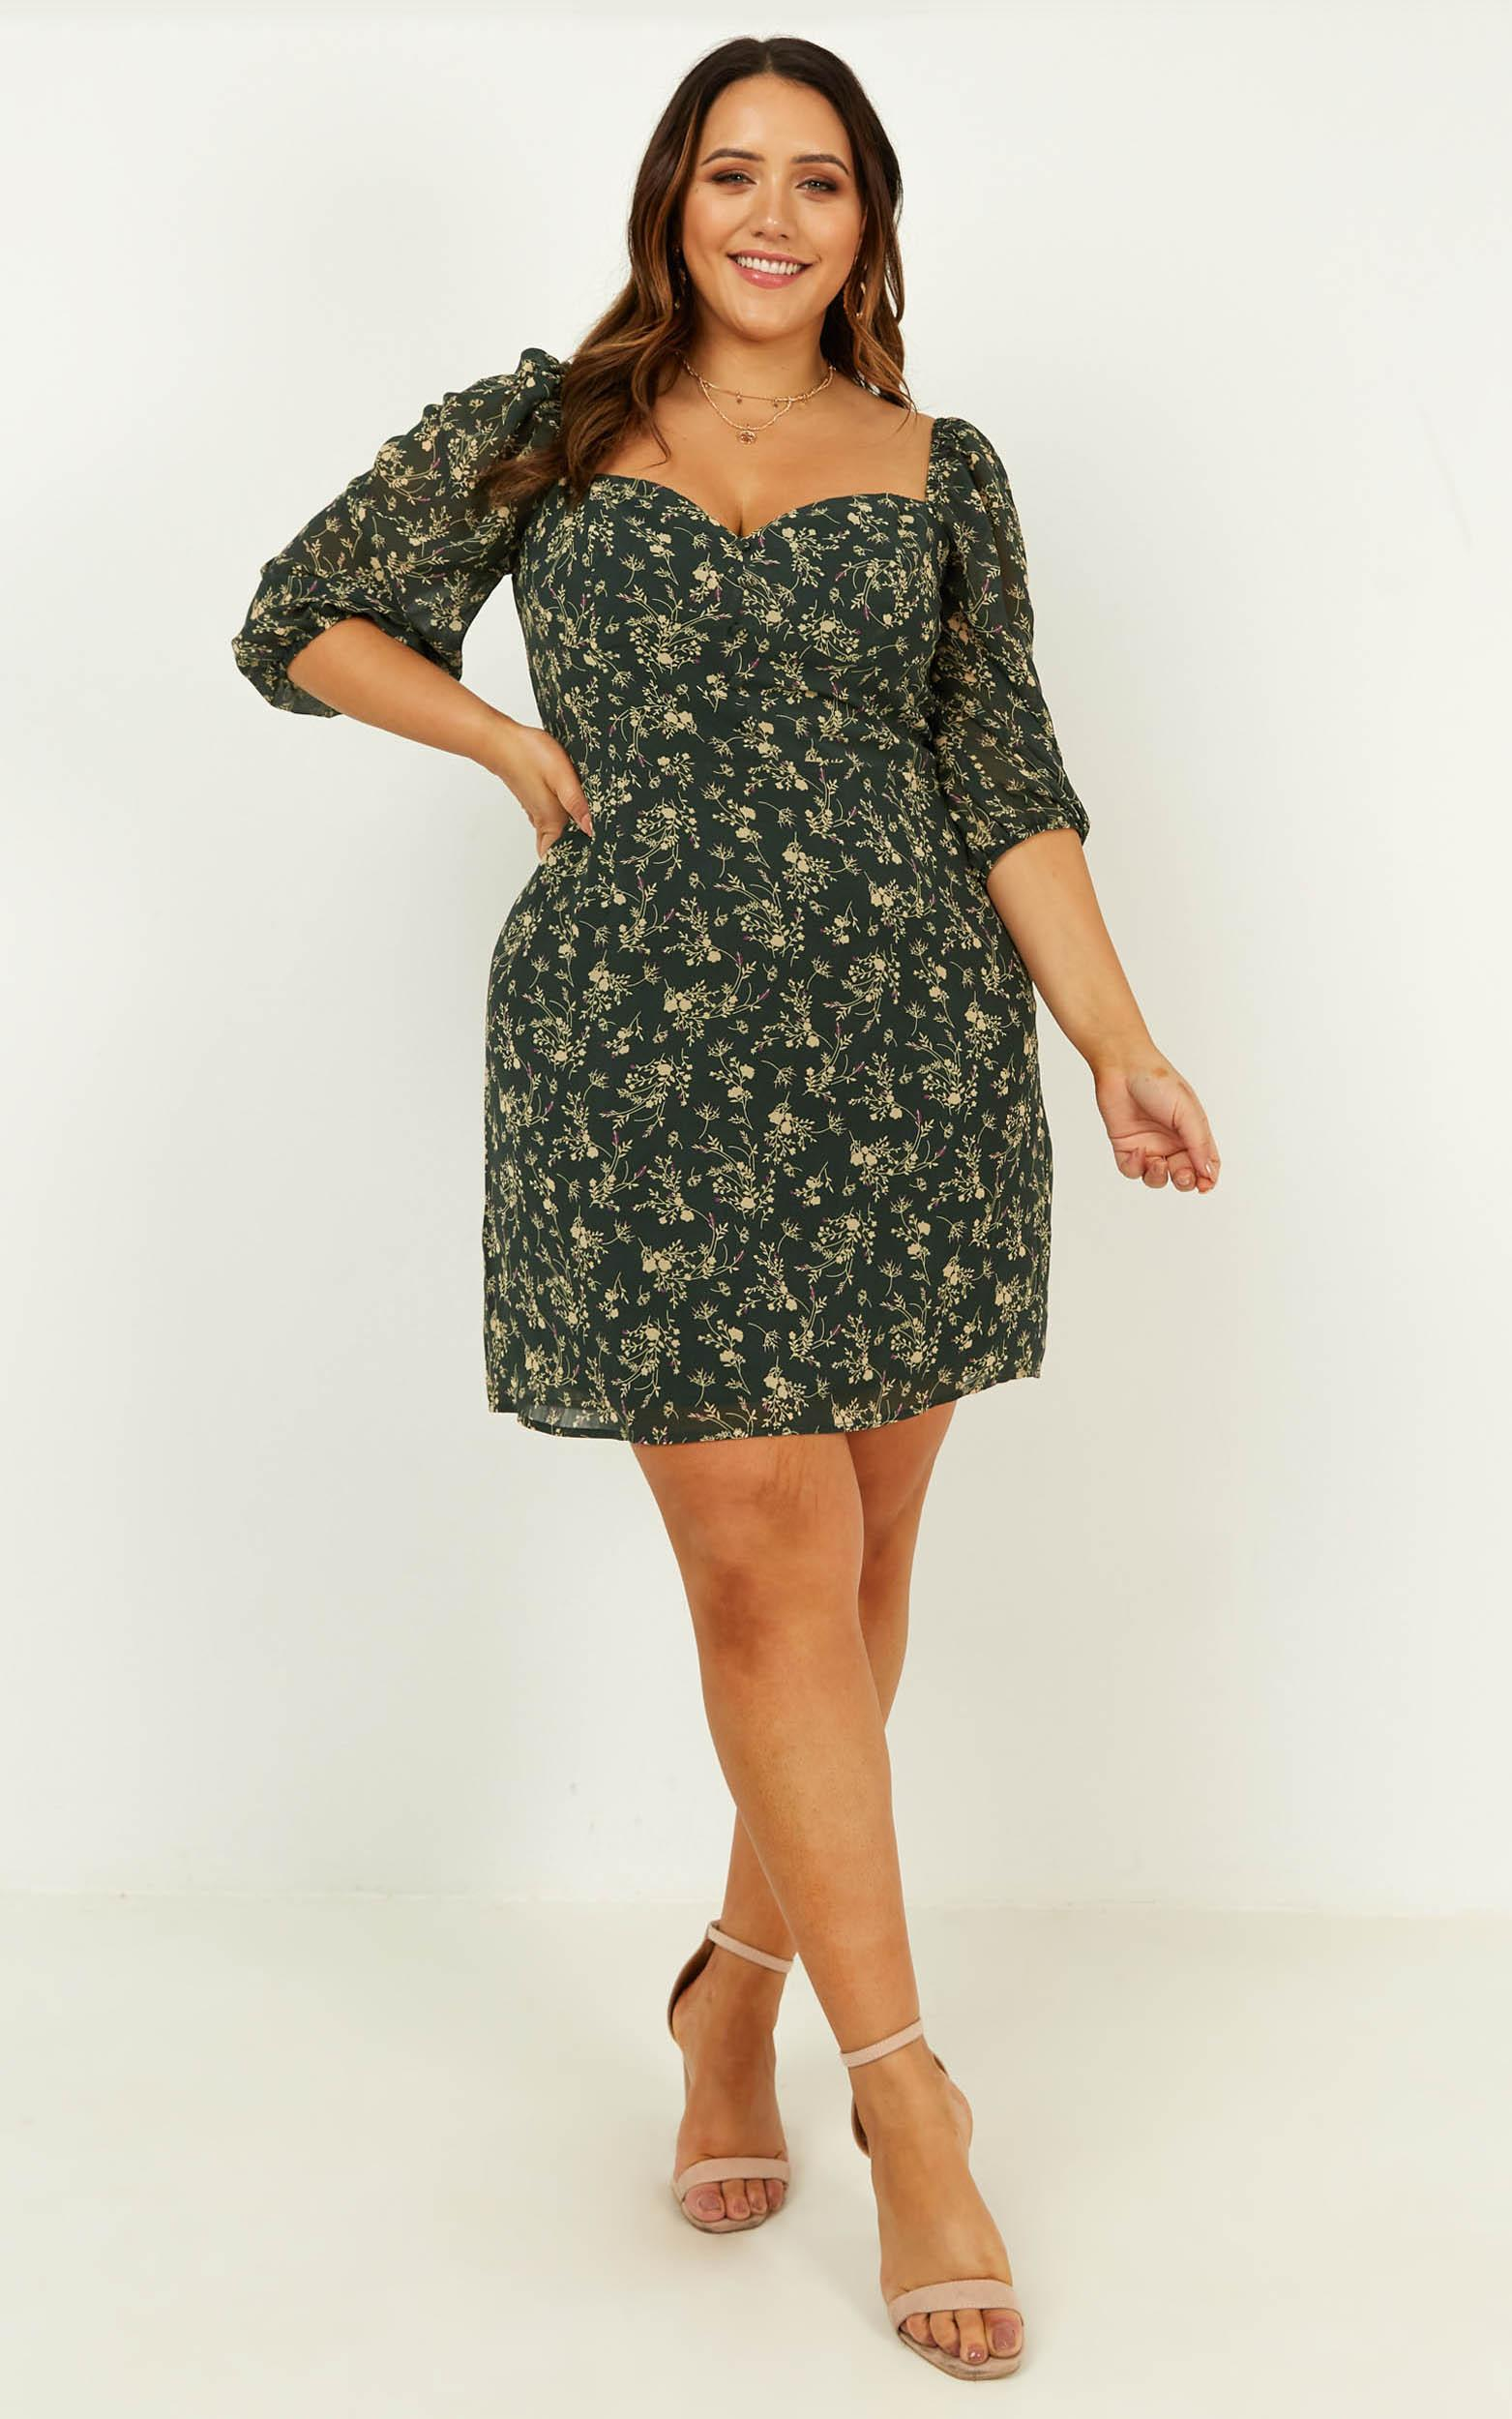 Couldn't Be Happier Dress in emerald floral - 20 (XXXXL), Green, hi-res image number null